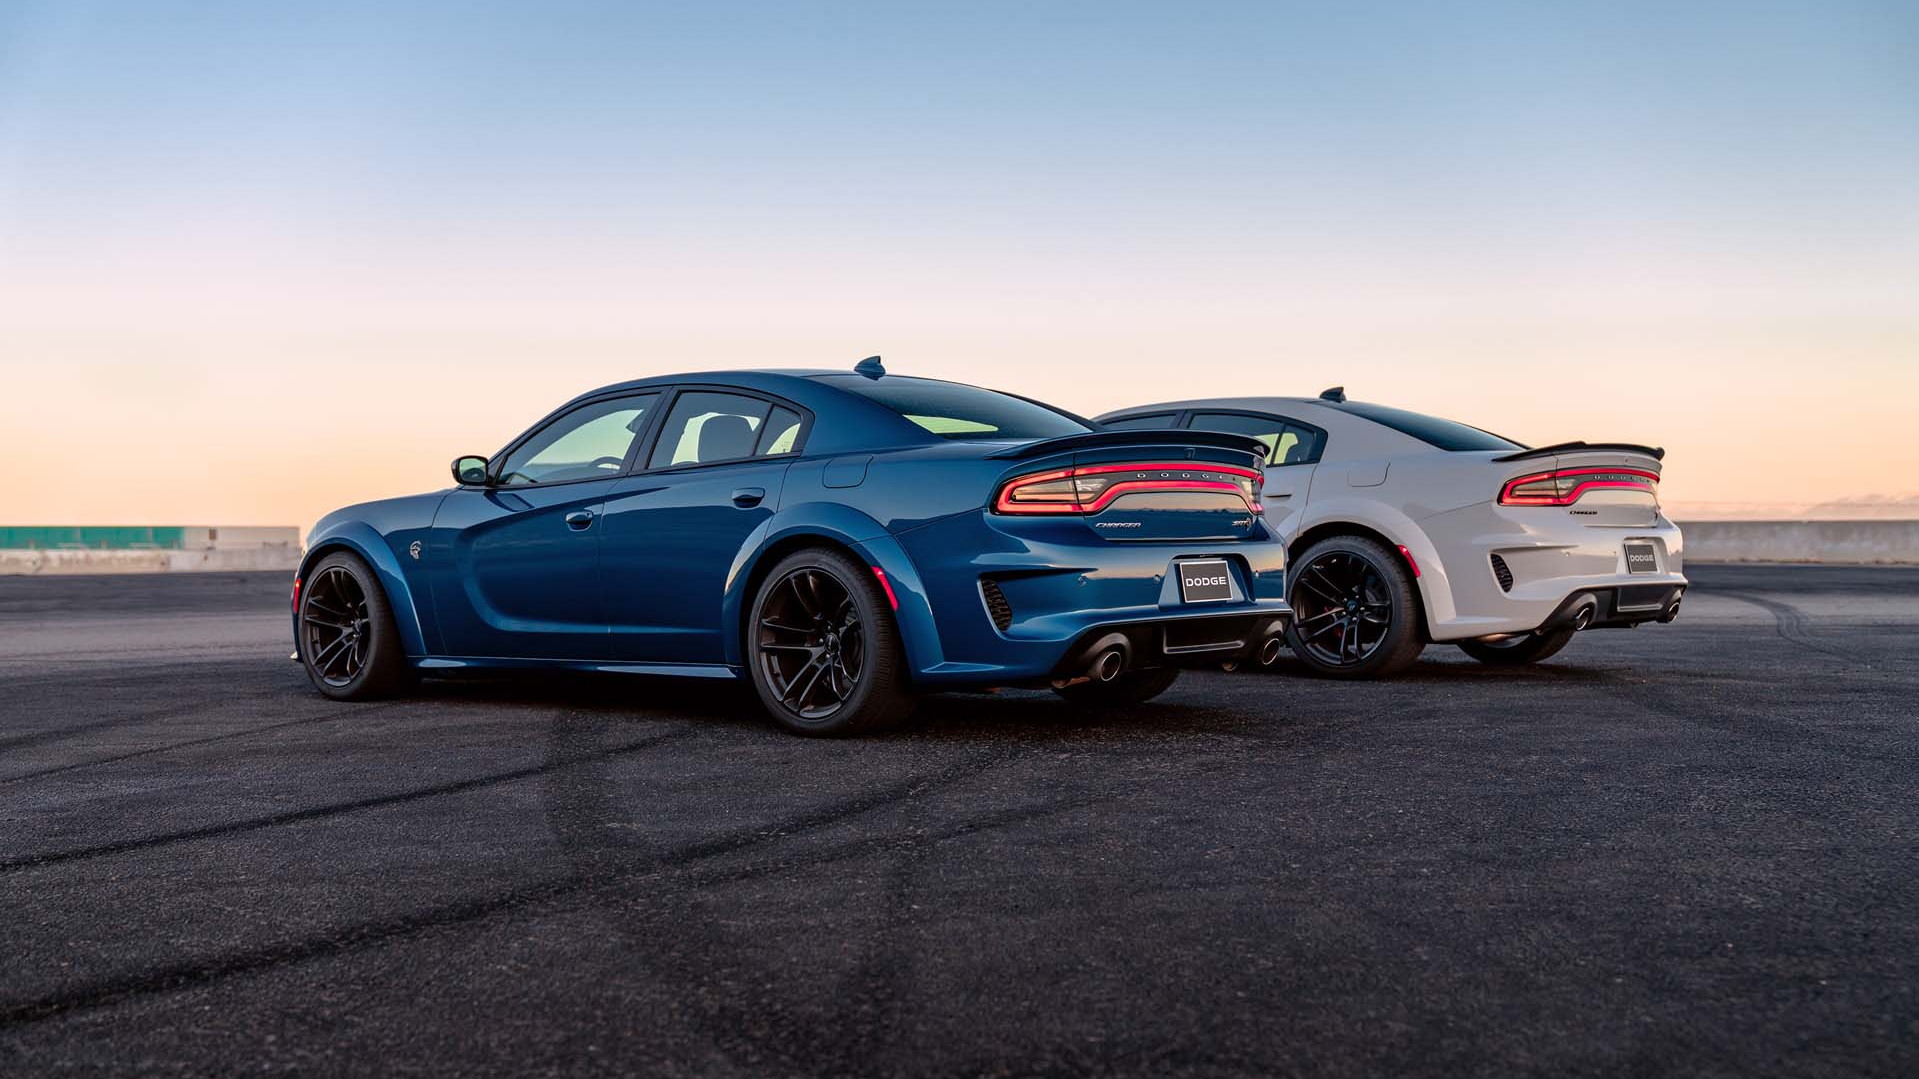 2020 Dodge Charger SRT Hellcat and Scat Pack Widebody